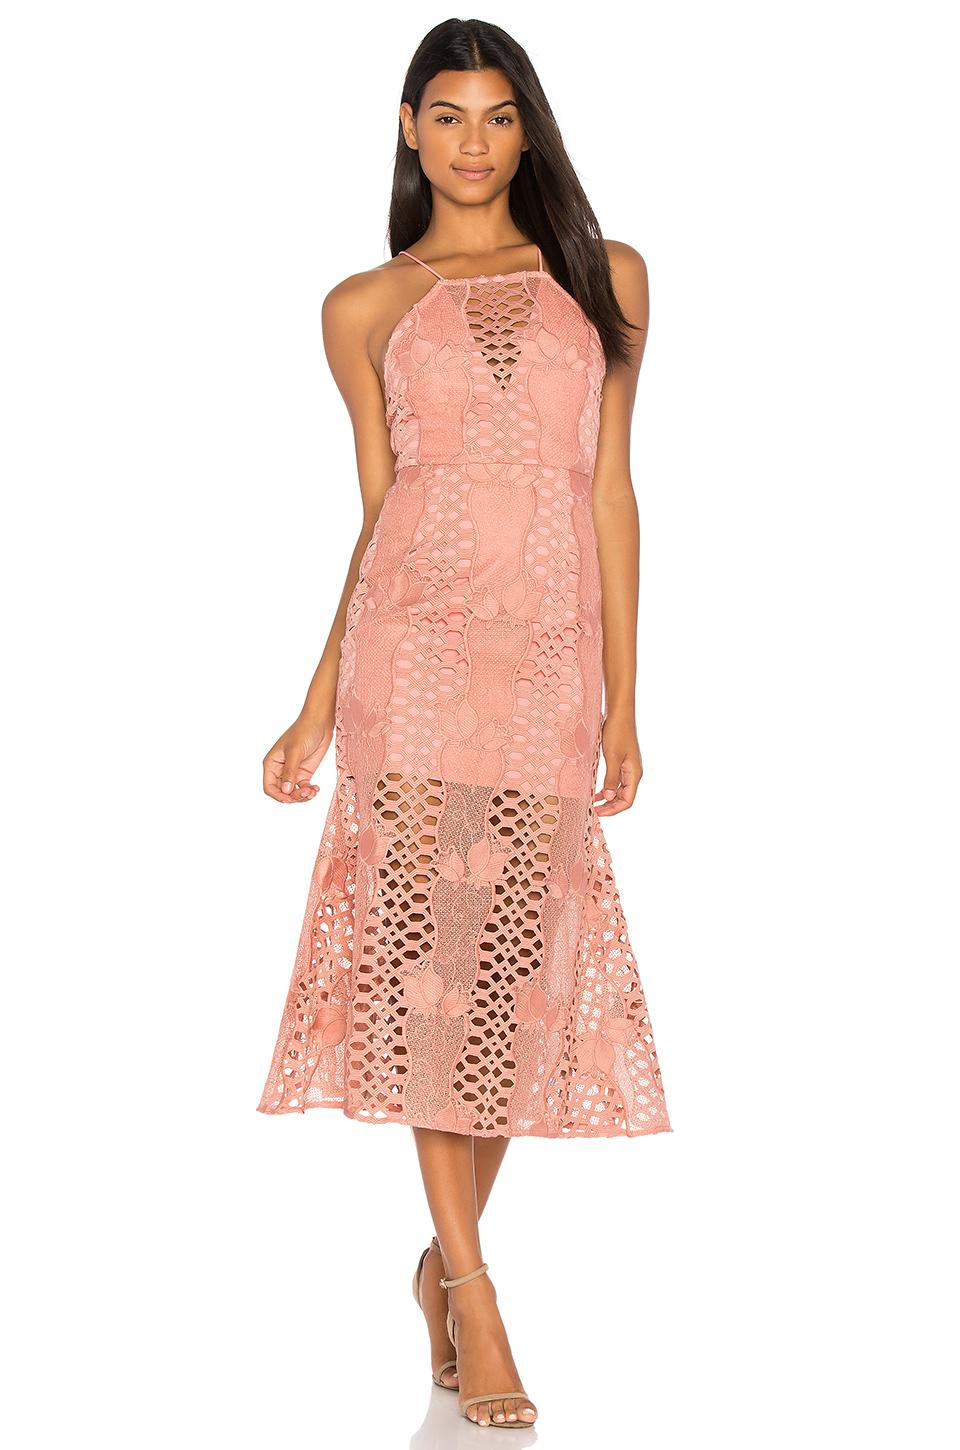 deaef73b70d2 Endless Rose Mermaid Fit Lace Dress in Pink - Lyst